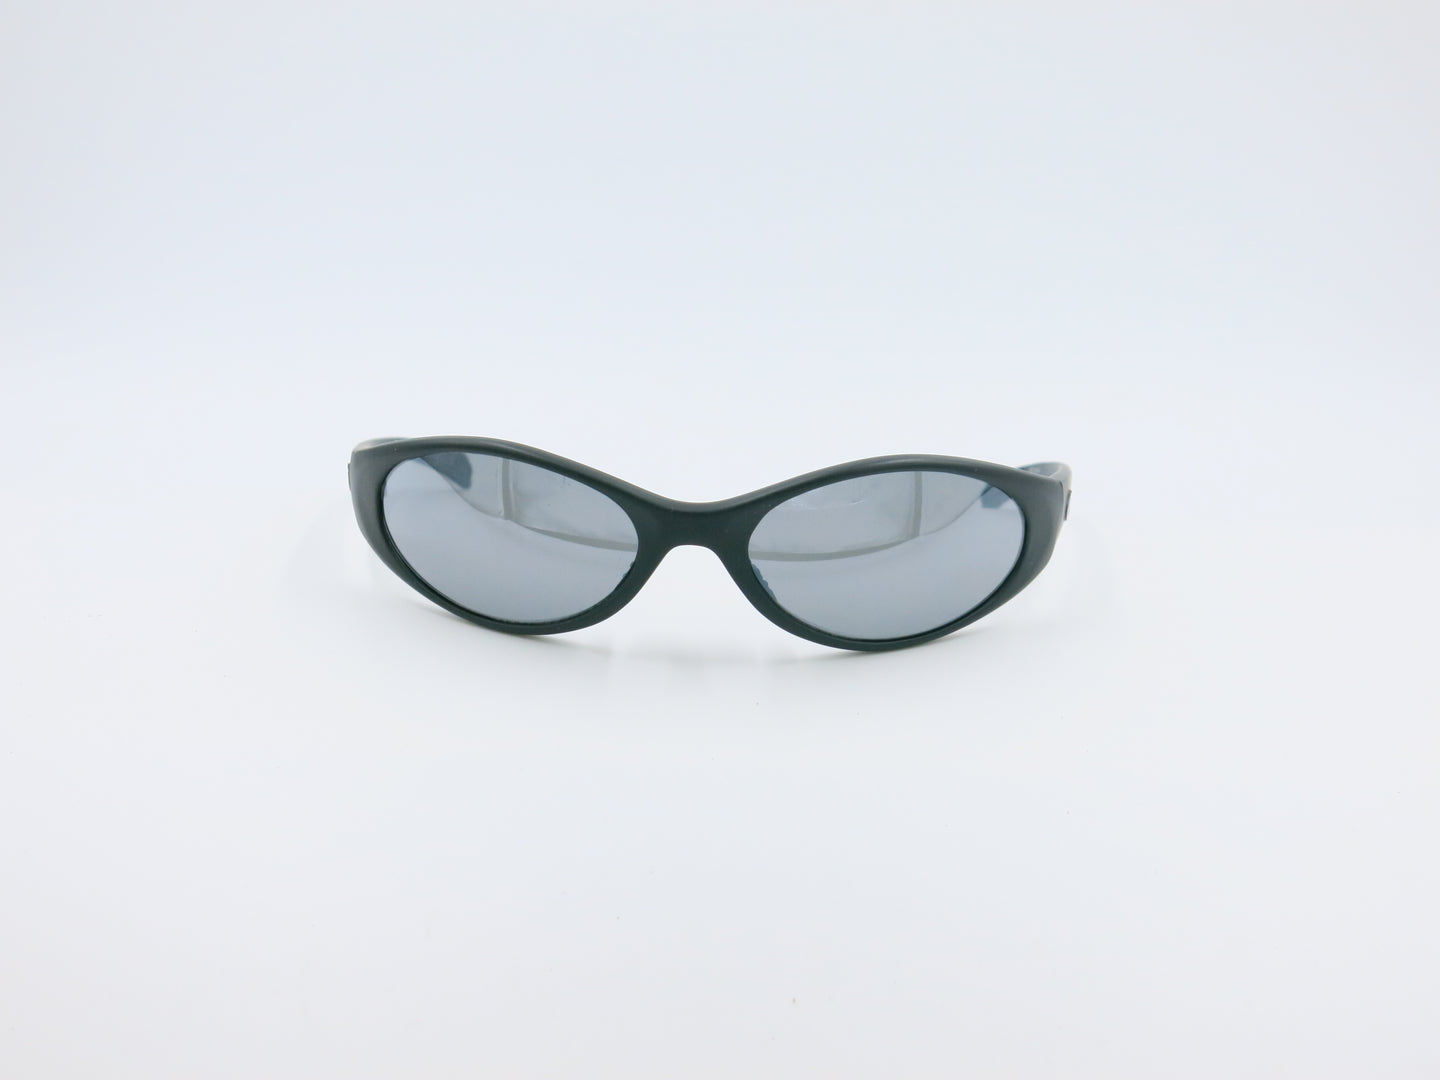 Gargoyles Sunglasses Lightning | Sunglasses by Gargoyles | Friedman & Sons